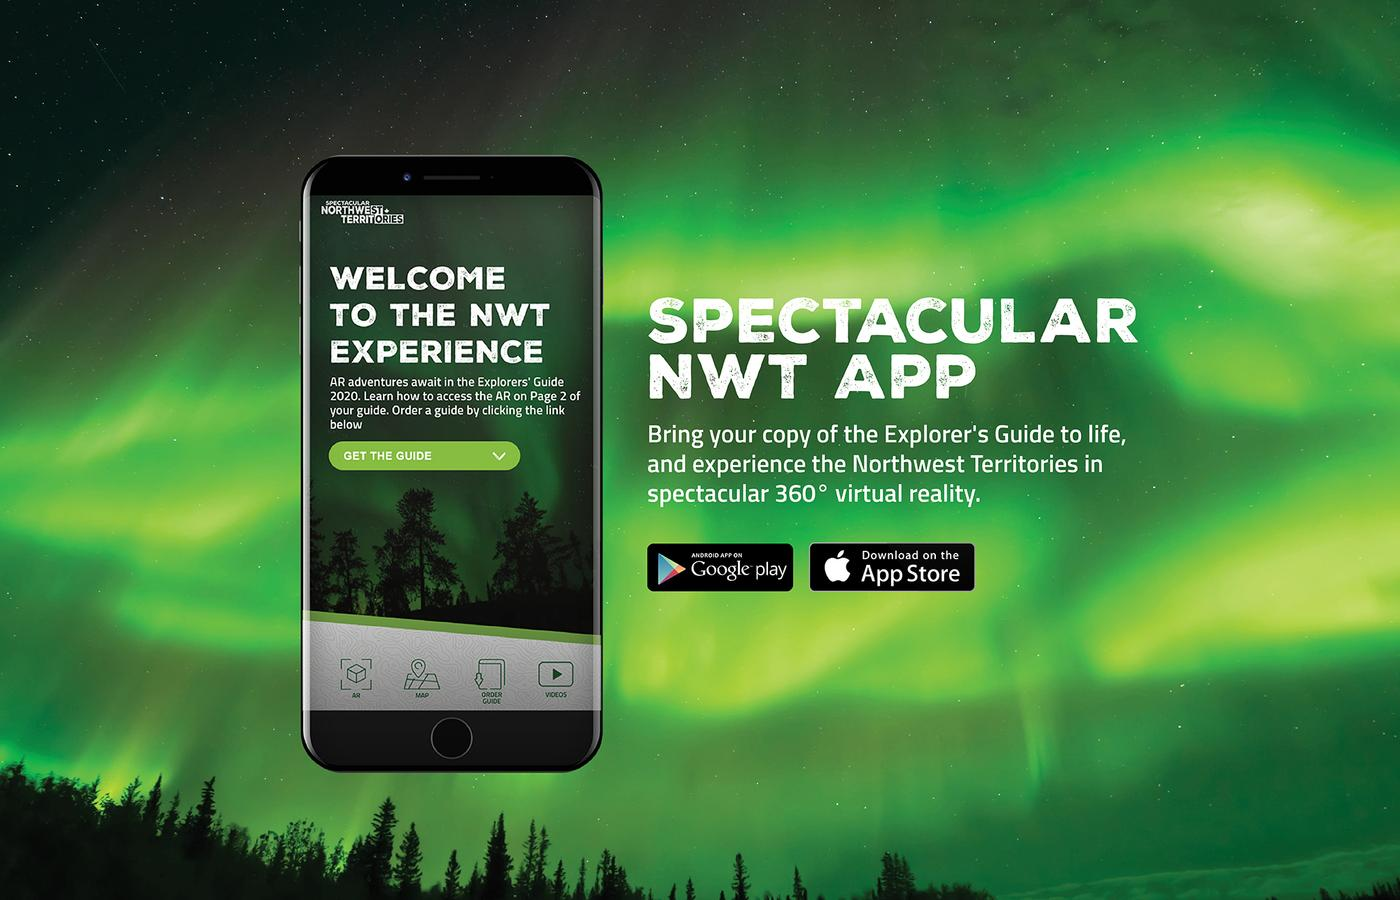 The NWT App is available on your device's app store